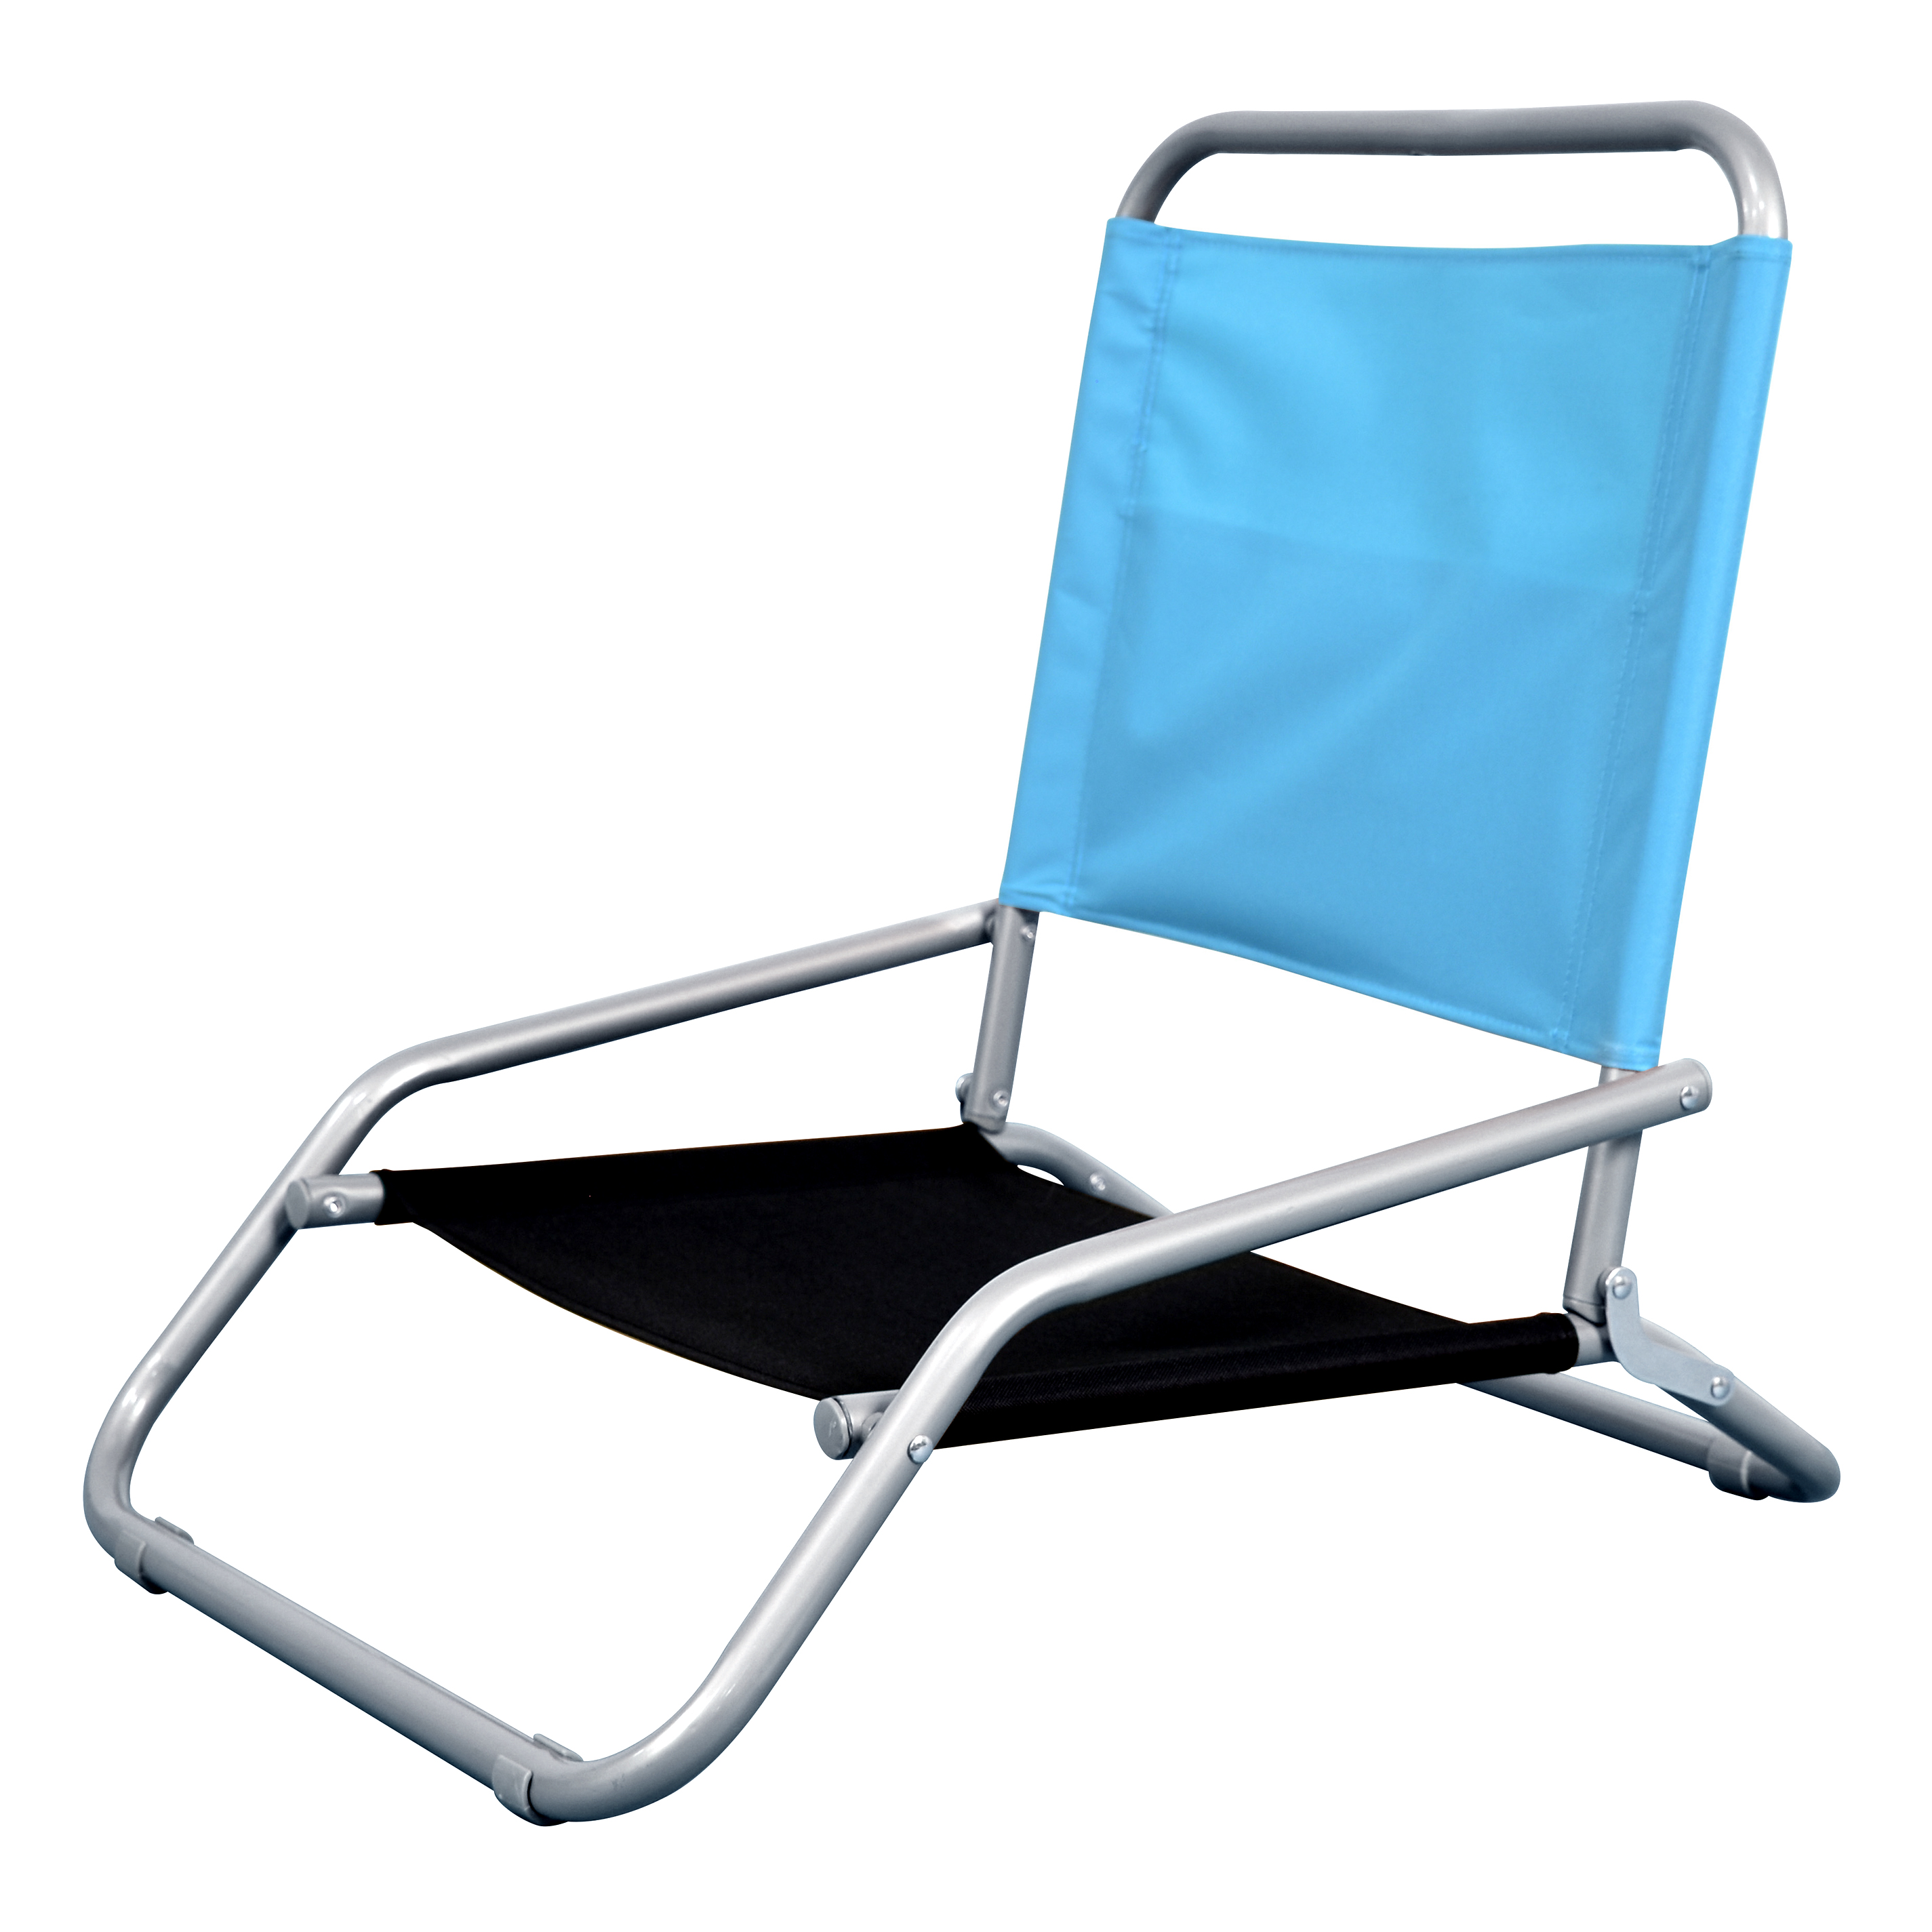 Astella's Oasis Sling-Back Chair in Blue and Black